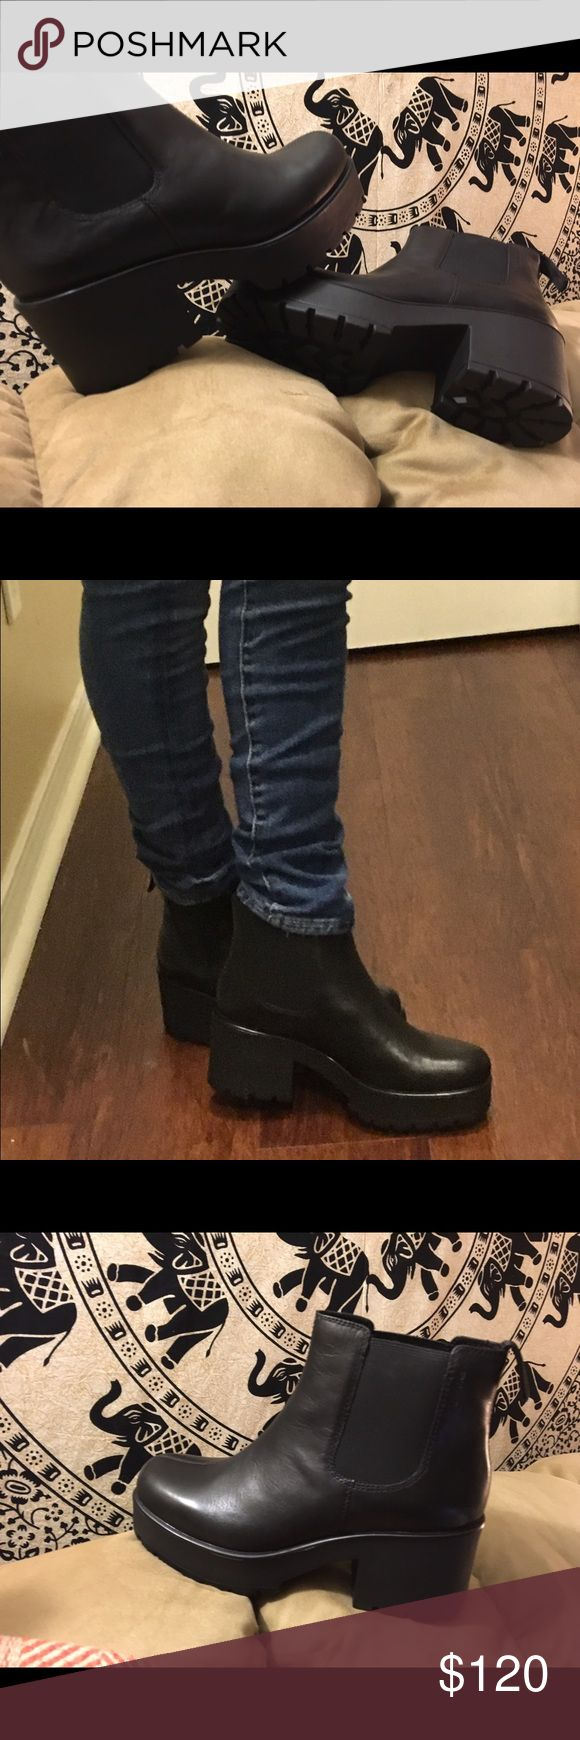 Vagabond Dioone Boots. Brand new with box! Size 39 Brand new leather Vagabond boots!! Vagabond Shoes Ankle Boots & Booties